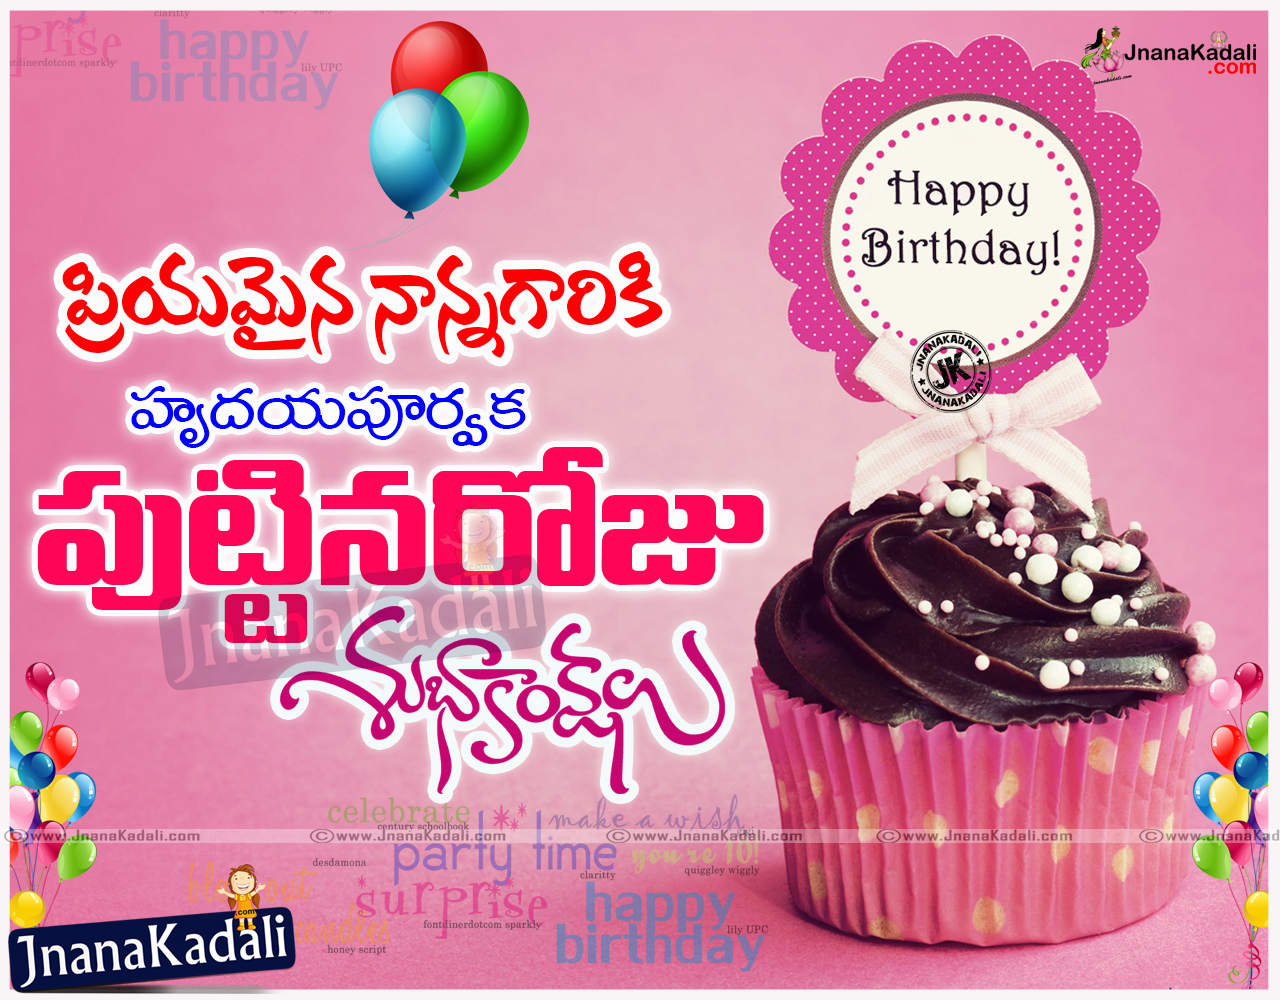 Telugu Best Birthday Quotes And Wishes Greetings Cards For Father